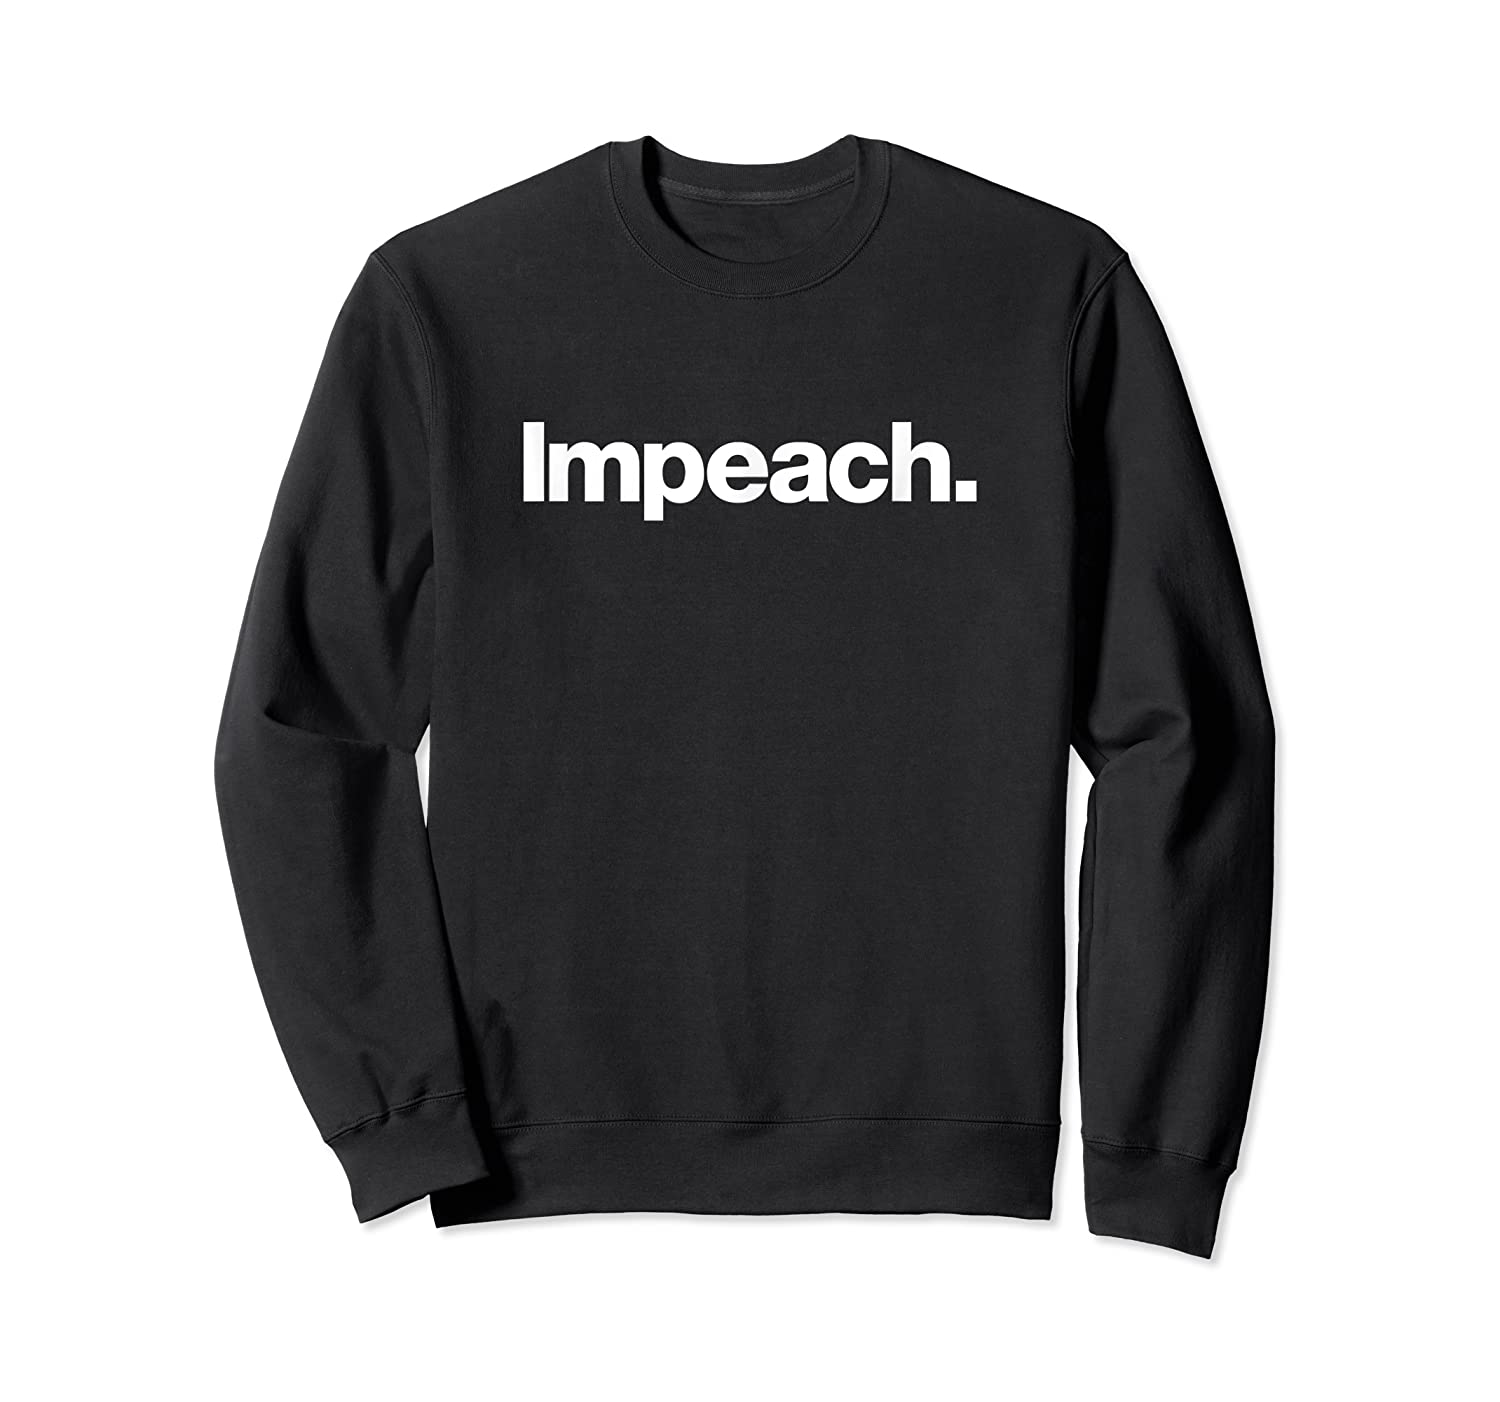 The Impeach T Shirt A Shirt That Says The Word Impeach Crewneck Sweater